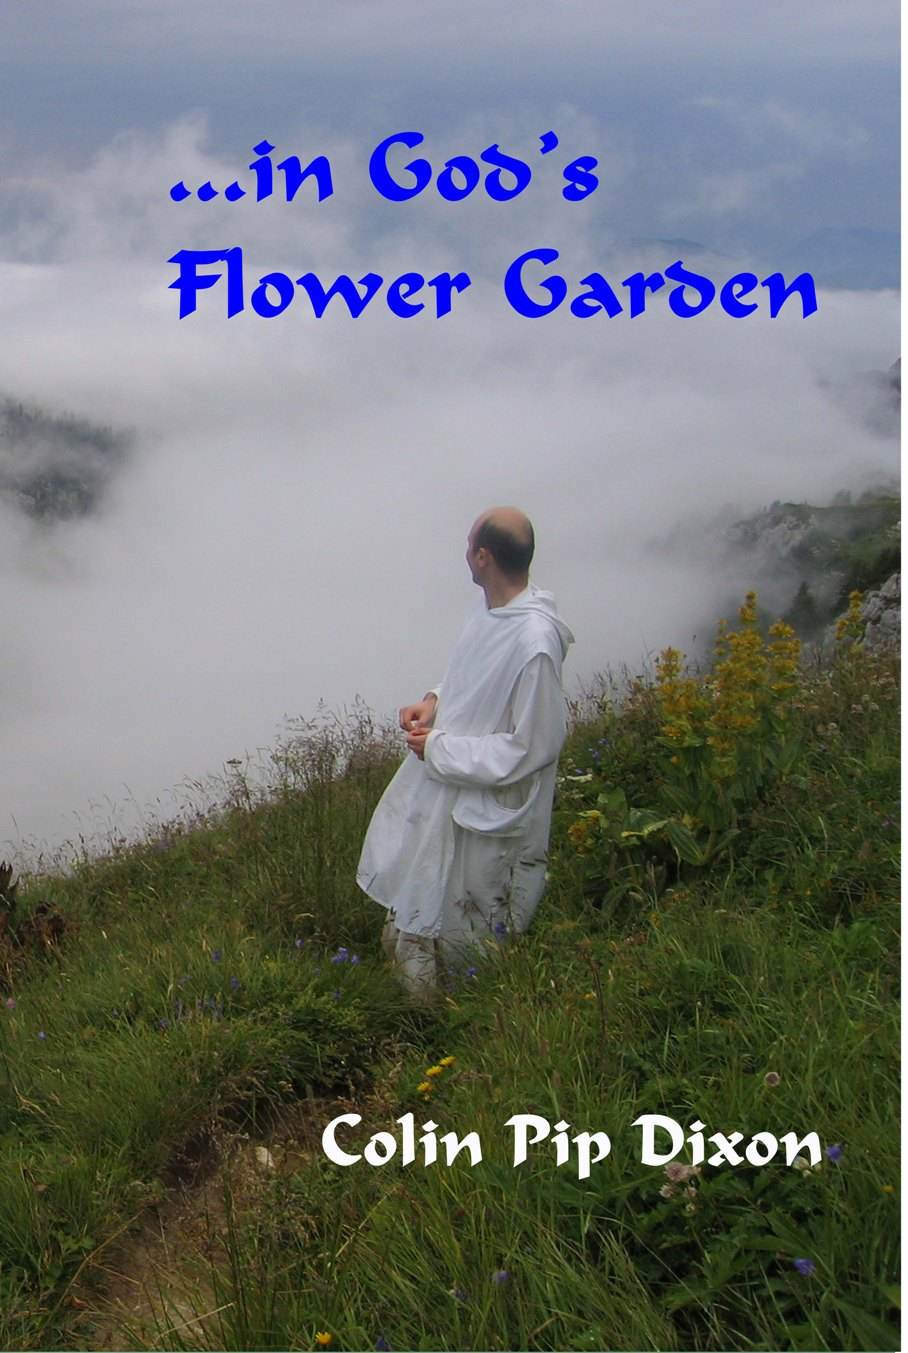 ...in God's Flower Garden